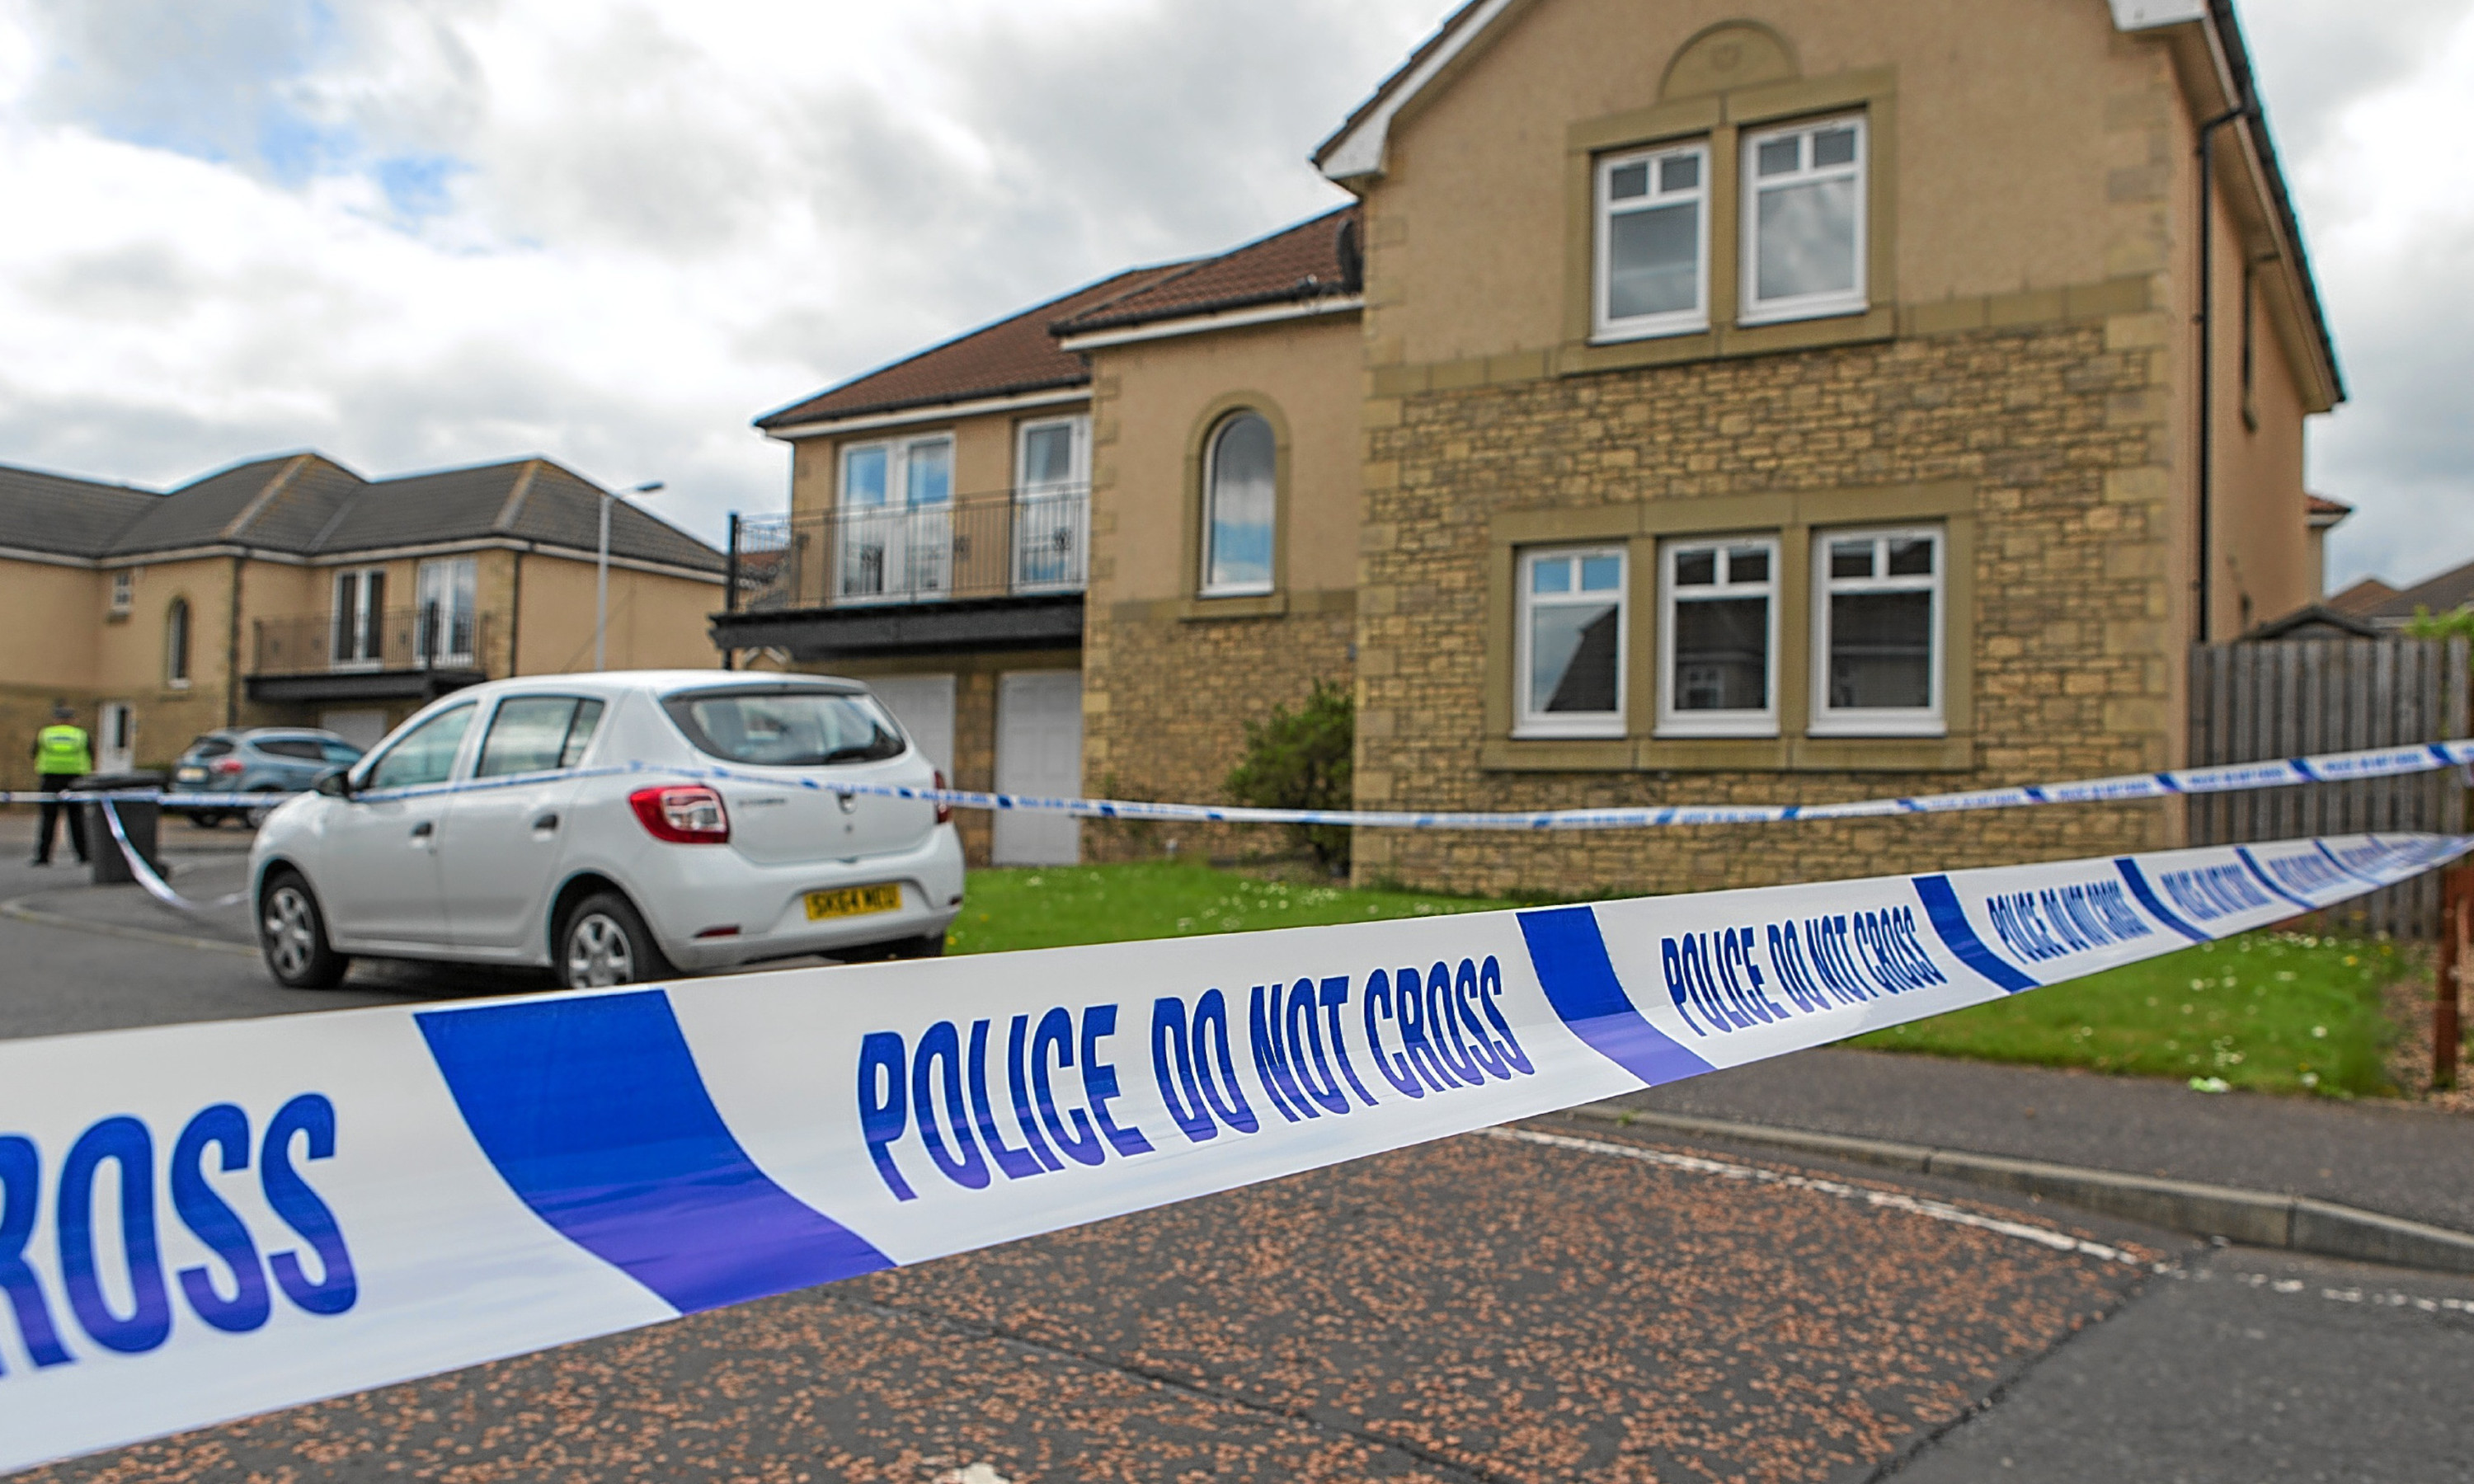 Police cordoned off the house after the gun incident.